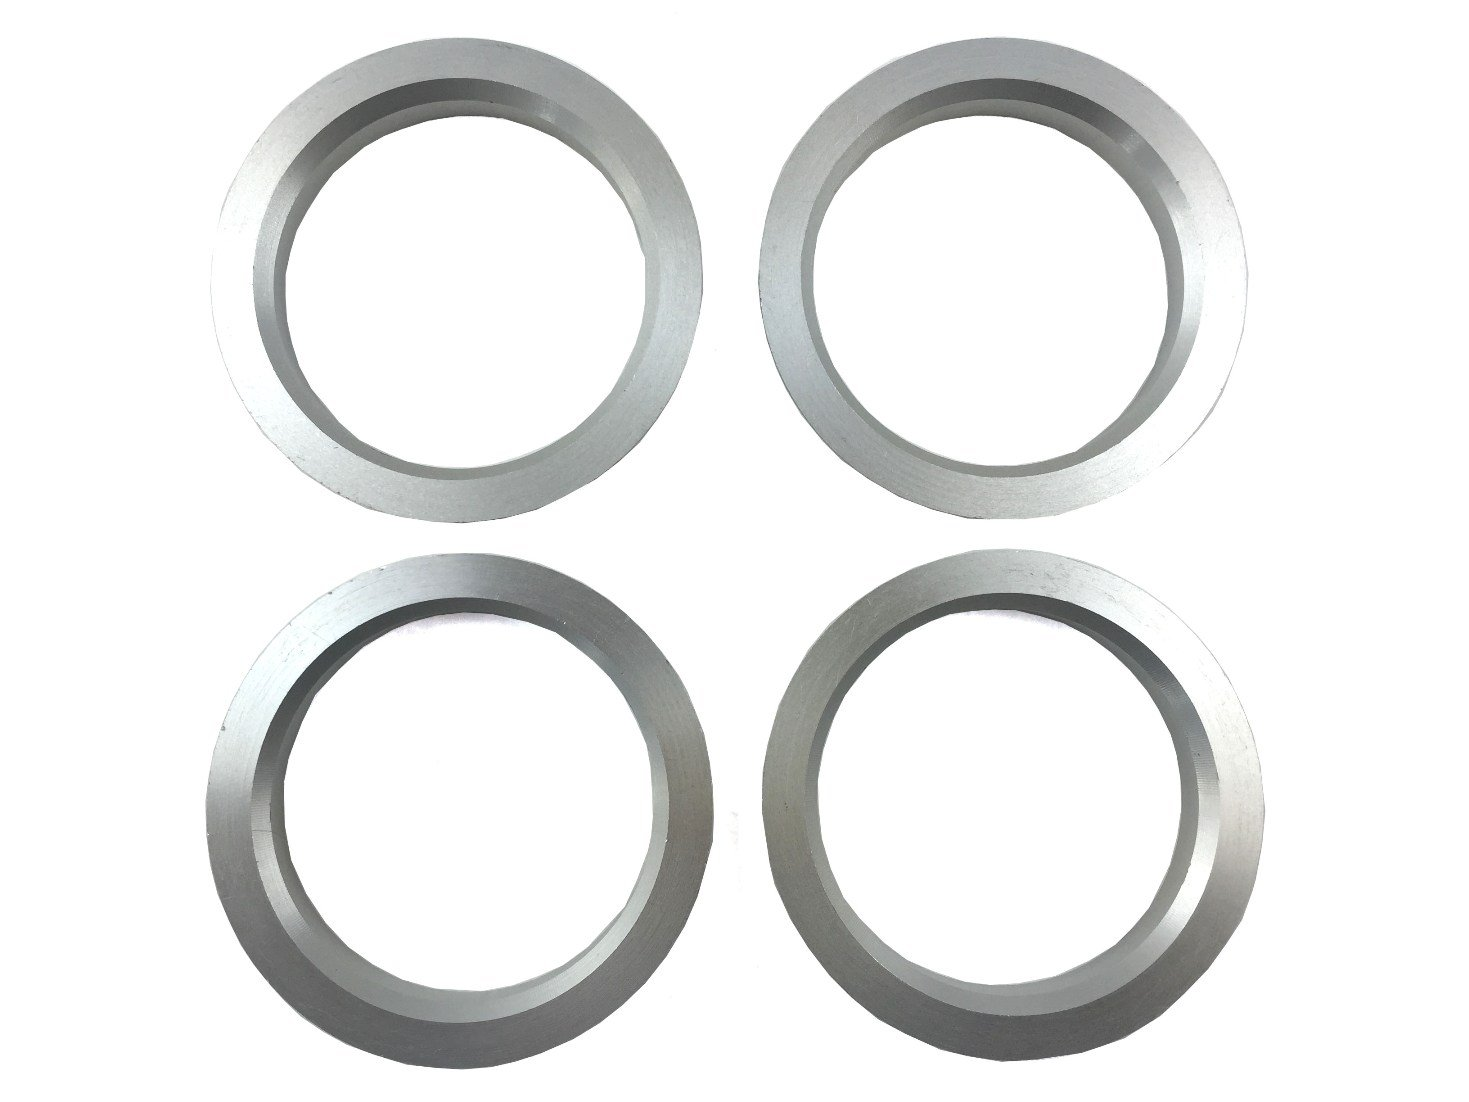 4 Pieces - Hub Centric Rings - 73.1mm OD to 60.1mm ID - Aluminum Hubrings